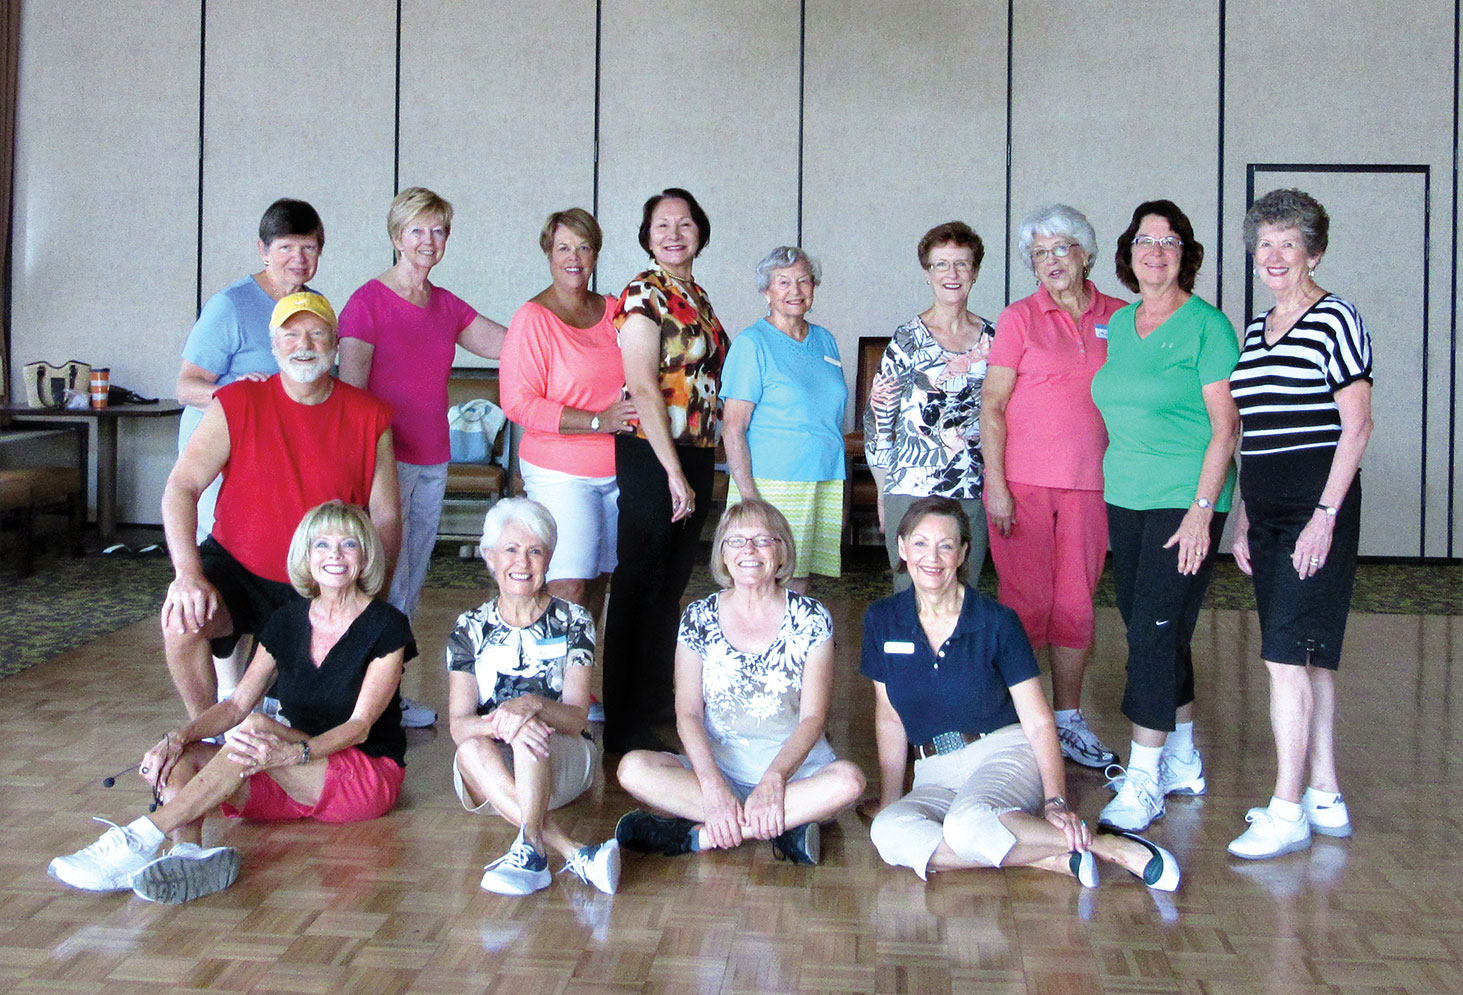 Tuesday morning finds these terrific Easy Intermediate dancers wearing out their sneakers in the Vermilion Room; lots of talent shows even in the heat. Rebecca's classes run year round for all skill levels.